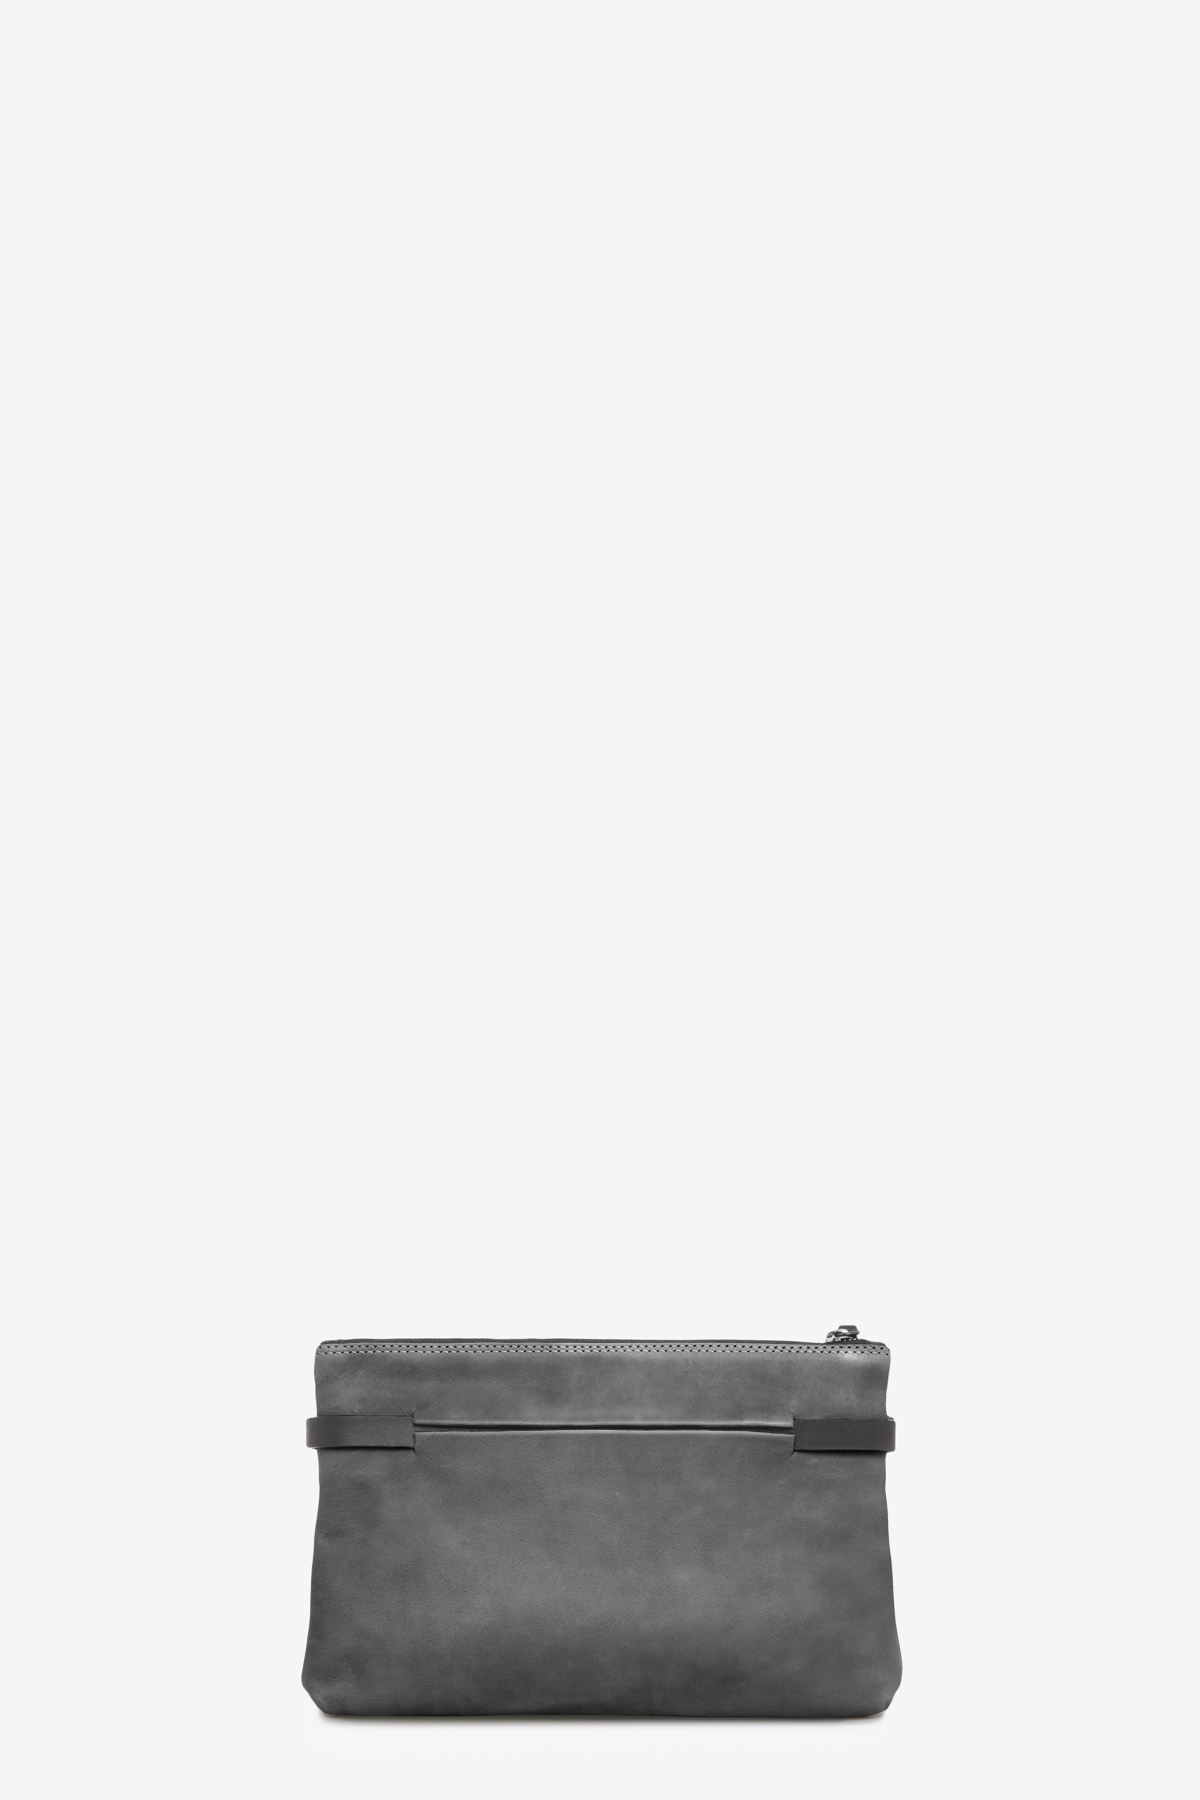 dclr004s-tapeclutch-a2-shadowgray-back